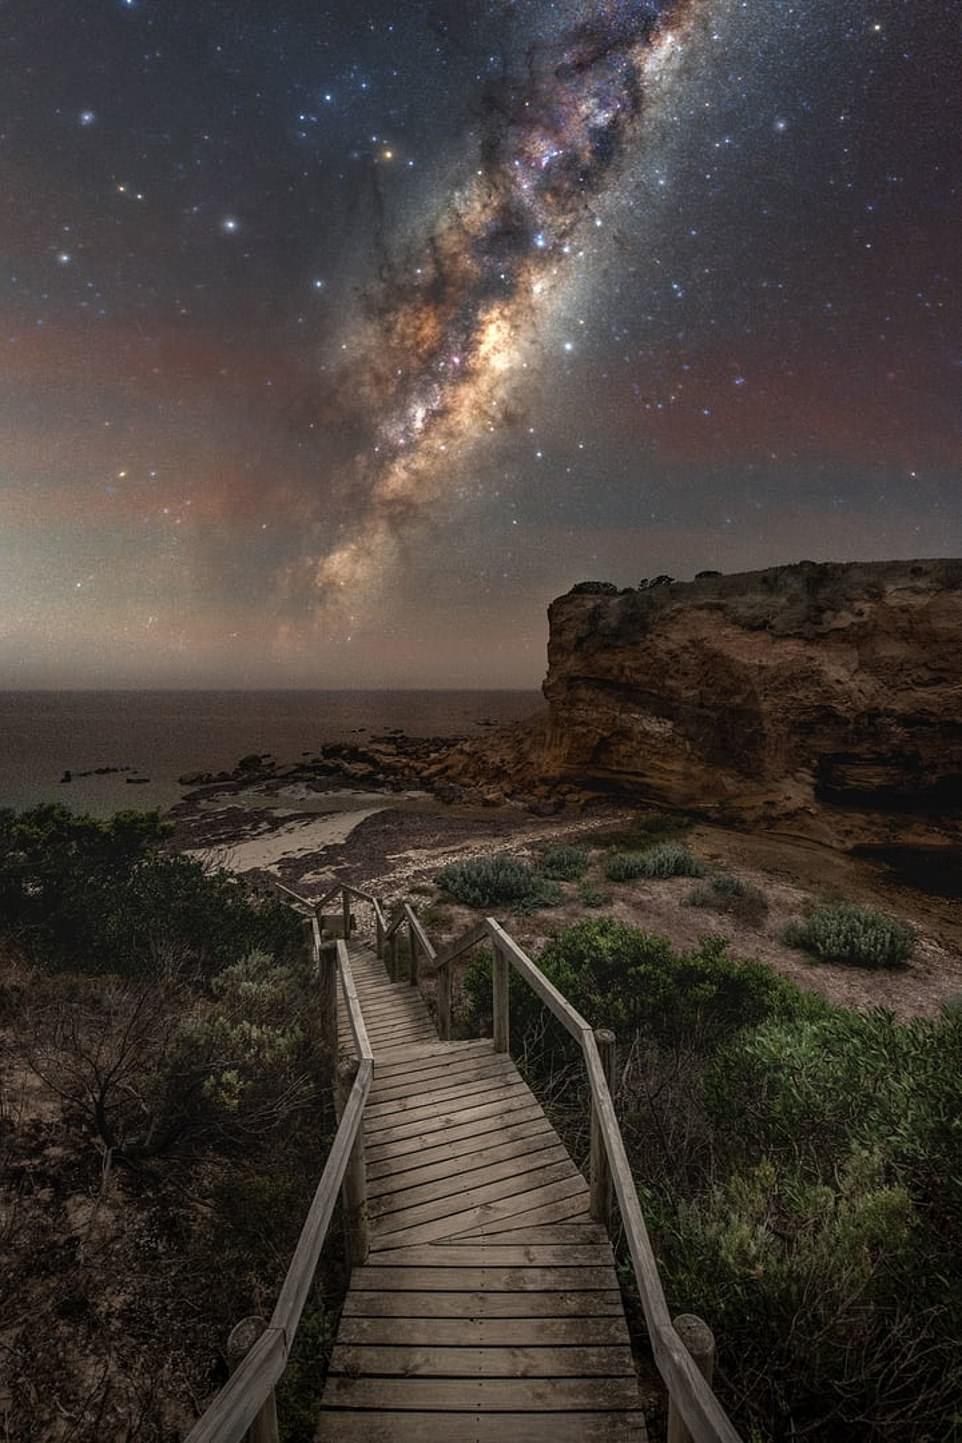 """'The Forgotten side of Kangaroo Island'— by 'Blntpencil' at Baudin Beach, Kangaroo Island, Australia. They said: 'It is a capture of the rising galactic centre floating above the ocean and represents the way of life on the island """"where people live at one with nature"""" '"""